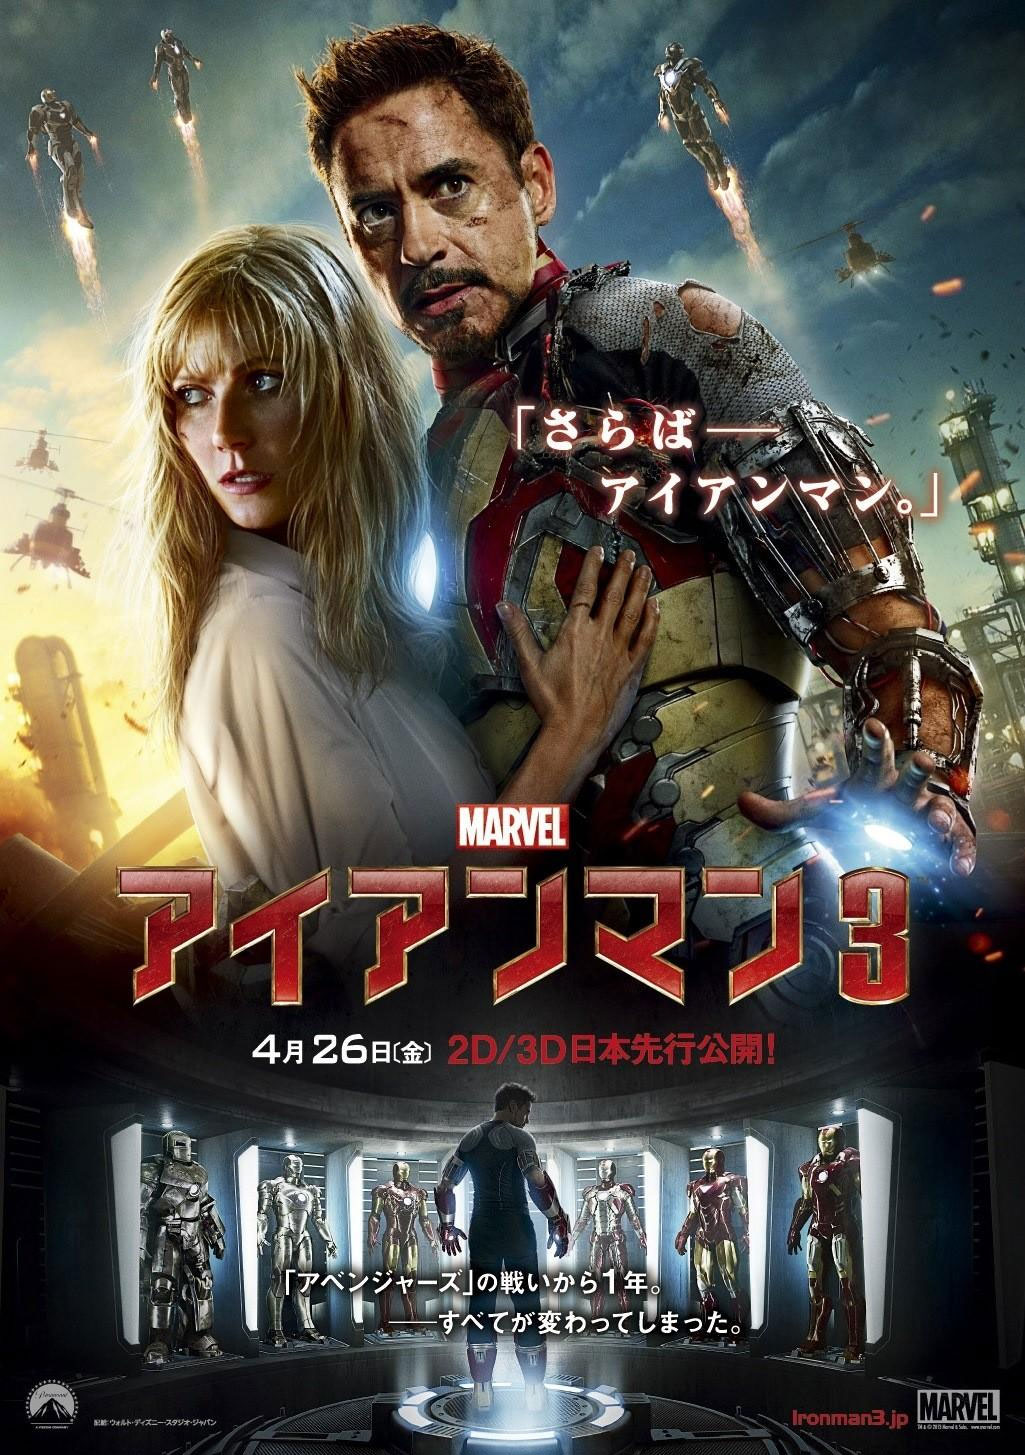 http://2.bp.blogspot.com/-aM3ssvKgz0c/UTfTiv1X8GI/AAAAAAAAXw0/c_nYTYoLaFg/s1600/iron_man_3_robert_downey_jr_marvel_tony_stark_disney_Gwyneth_Paltrow_Pepper_Potts_asia_china_chinese.jpg